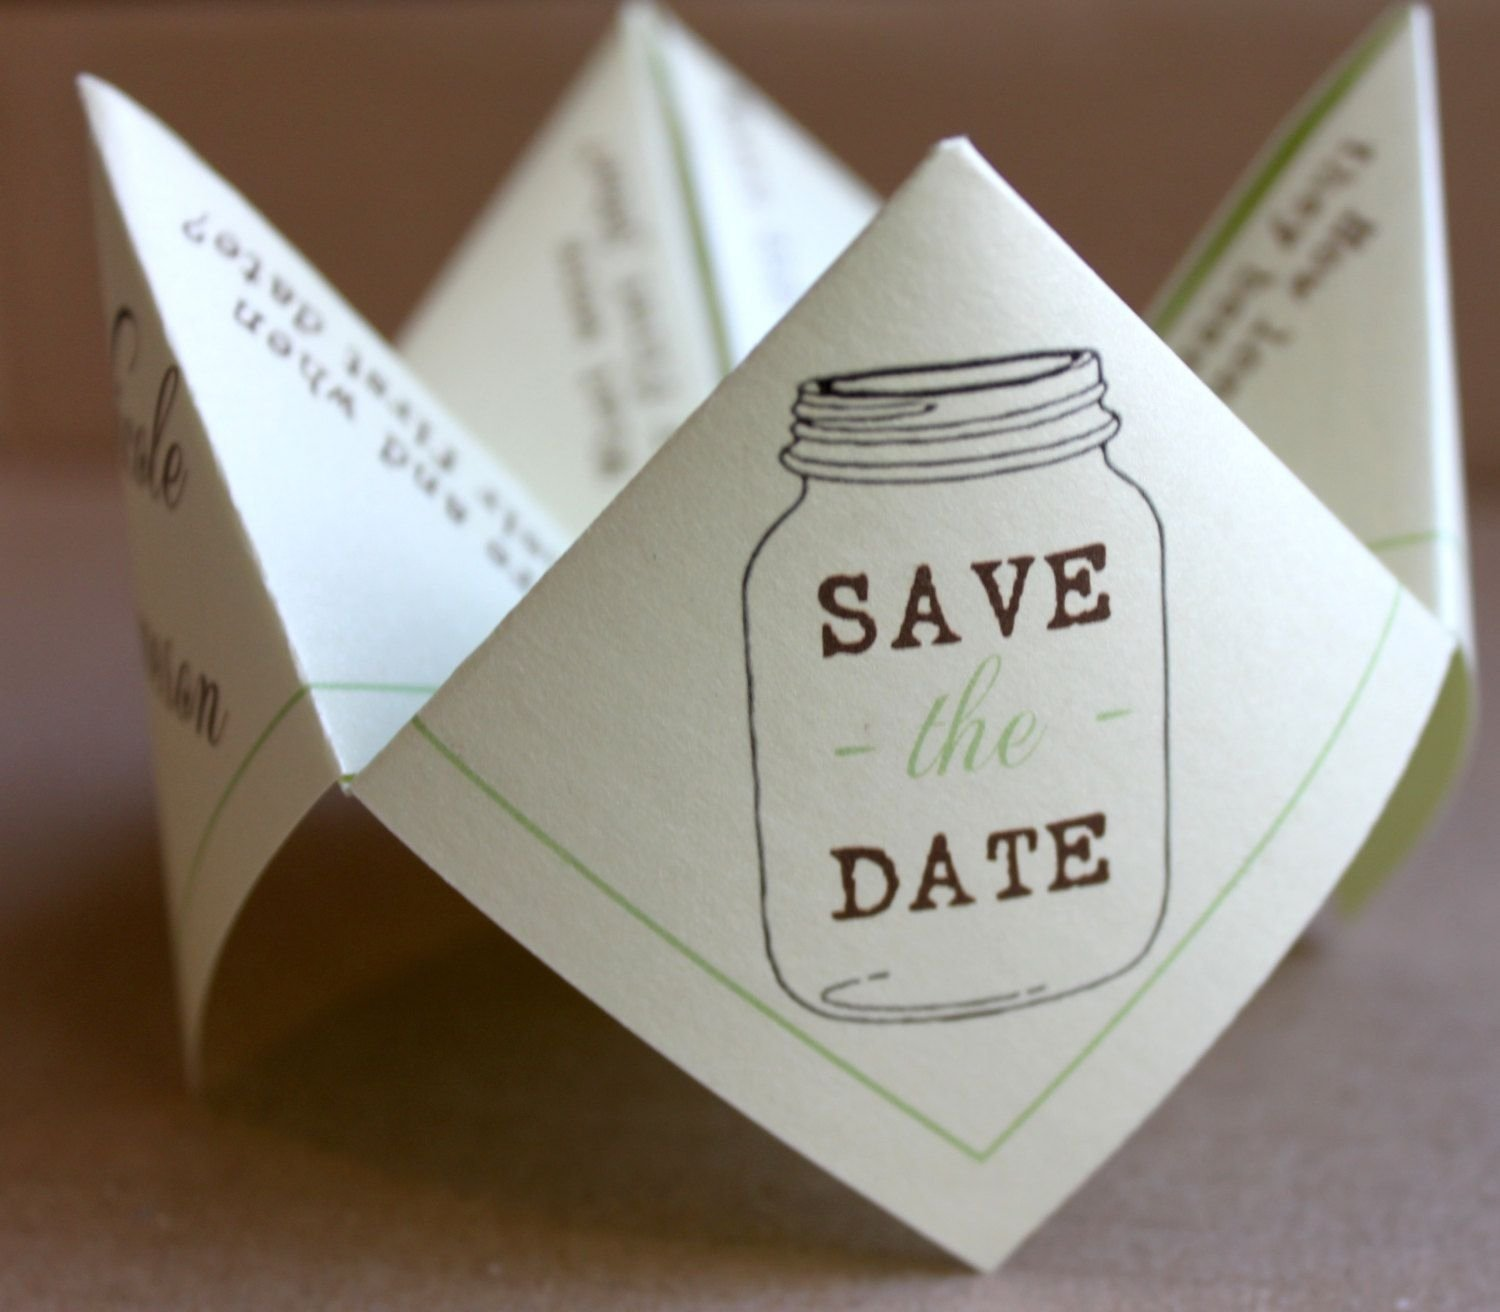 10 Attractive Creative Save The Date Ideas 15 brilliantly creative save the date ideas creative wedding and 1 2020